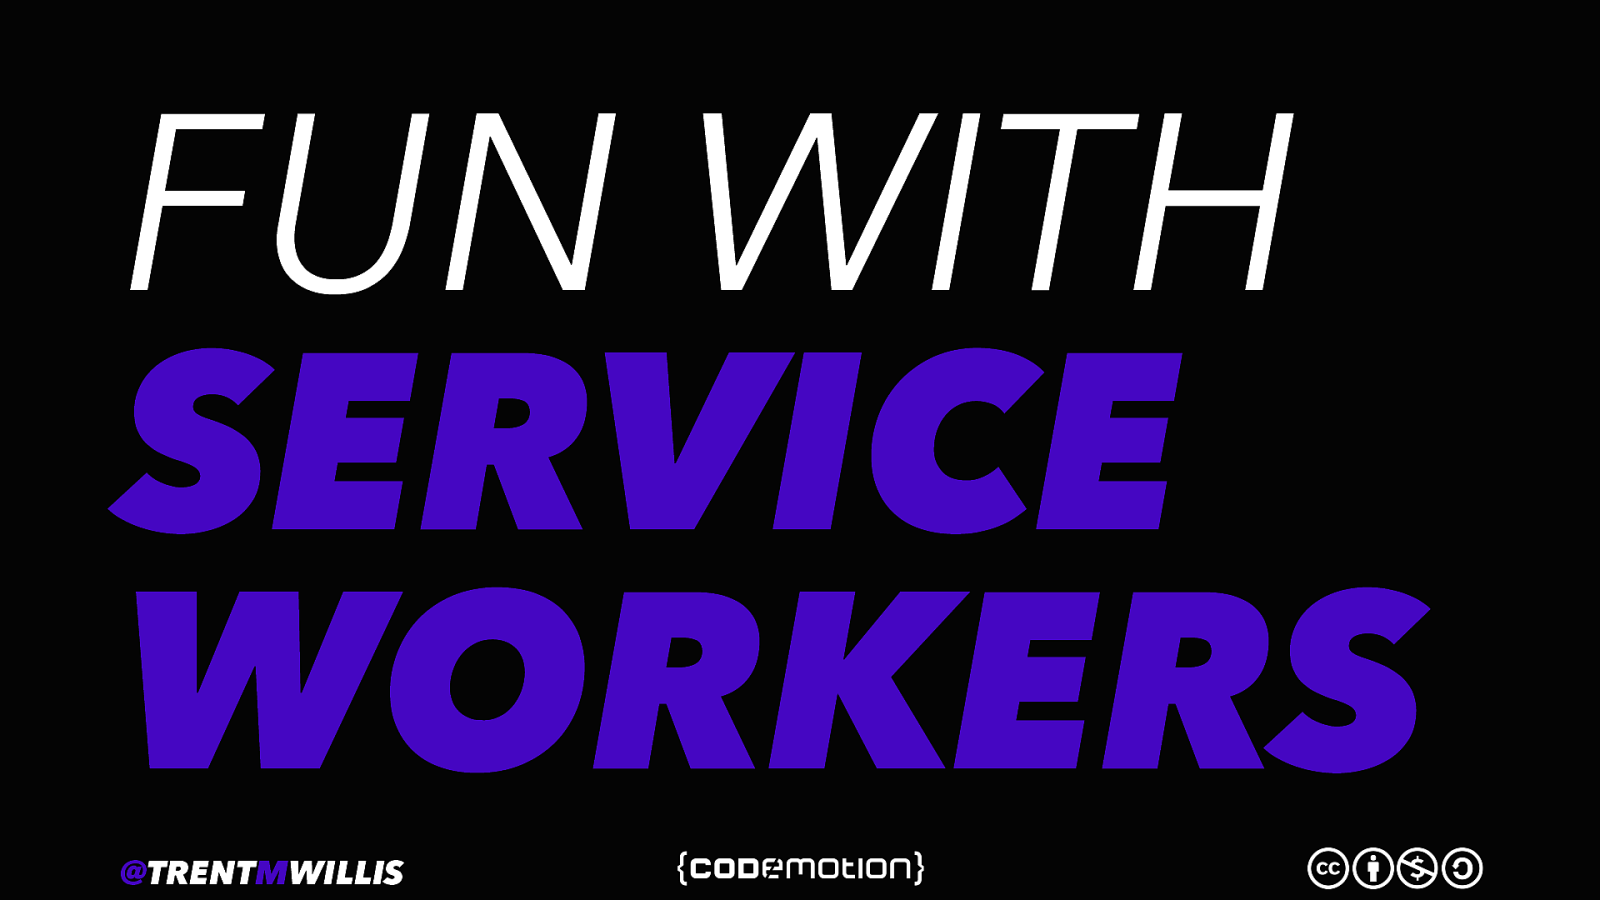 Fun with Service Workers